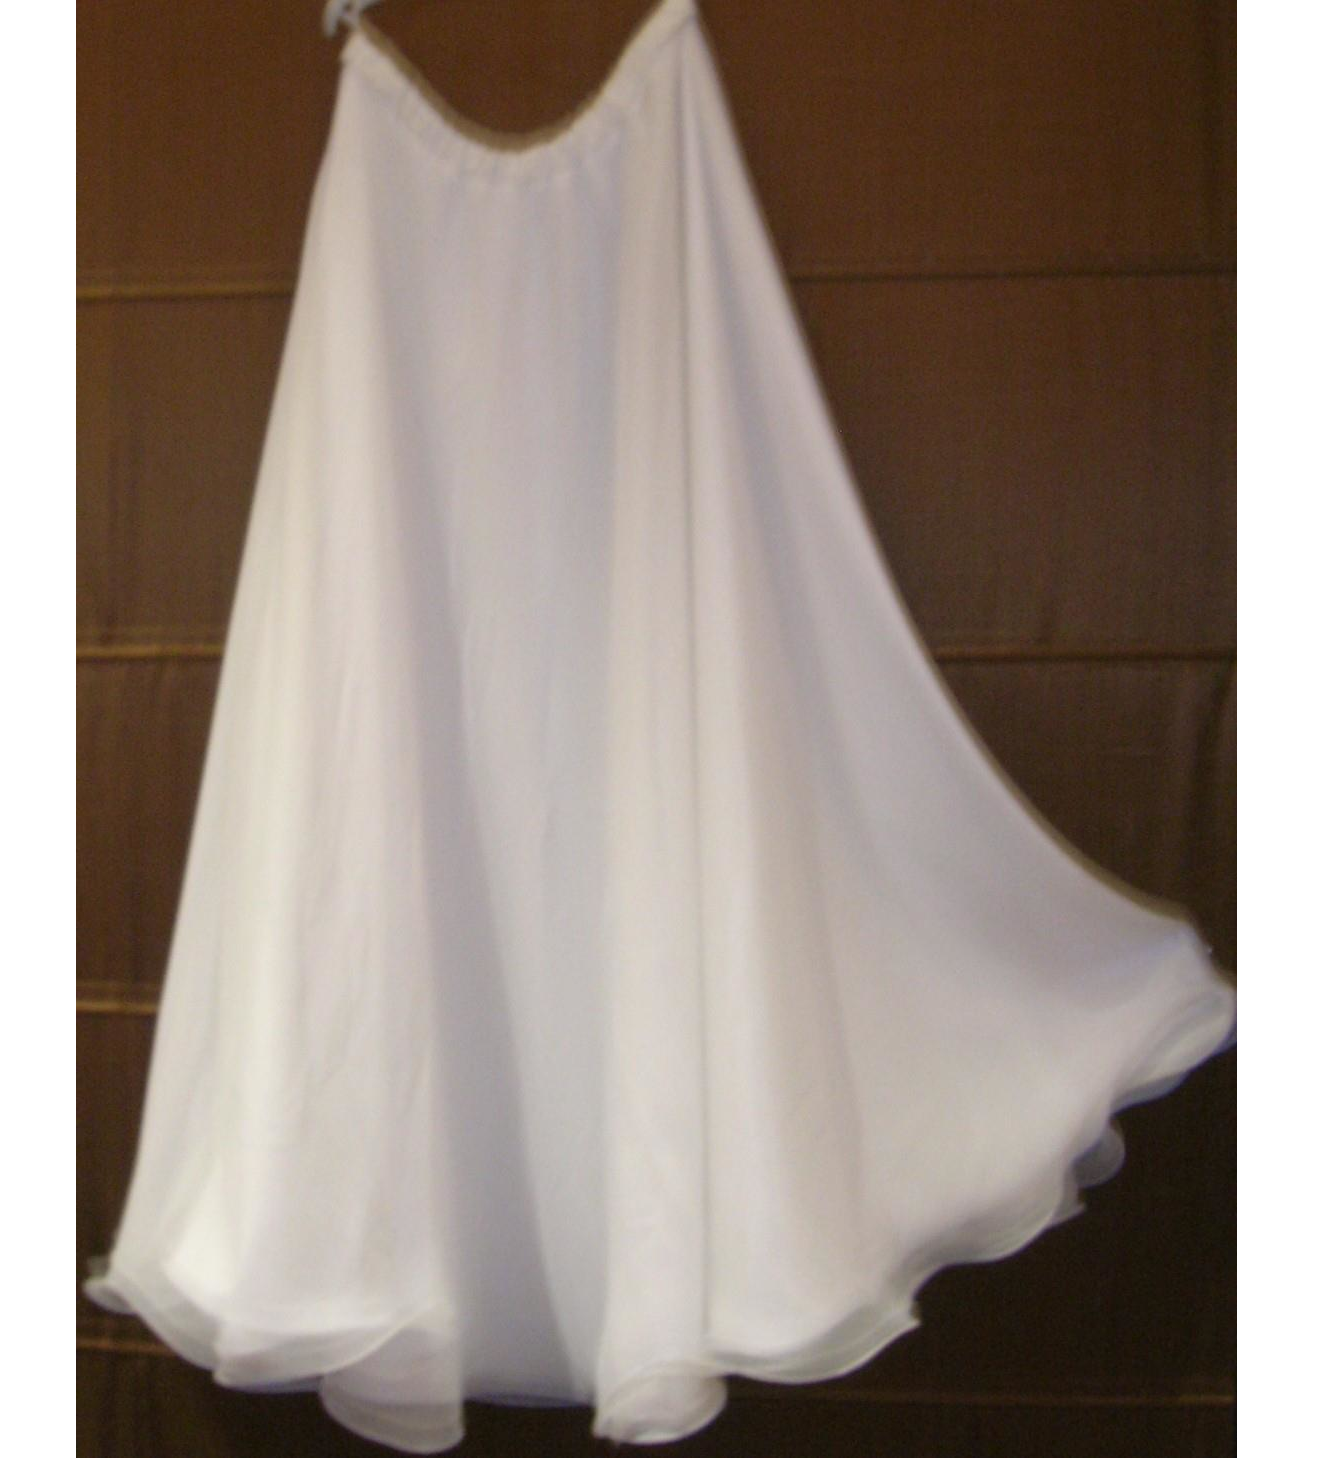 White Chiffon 1/2 circle skirt with flounce